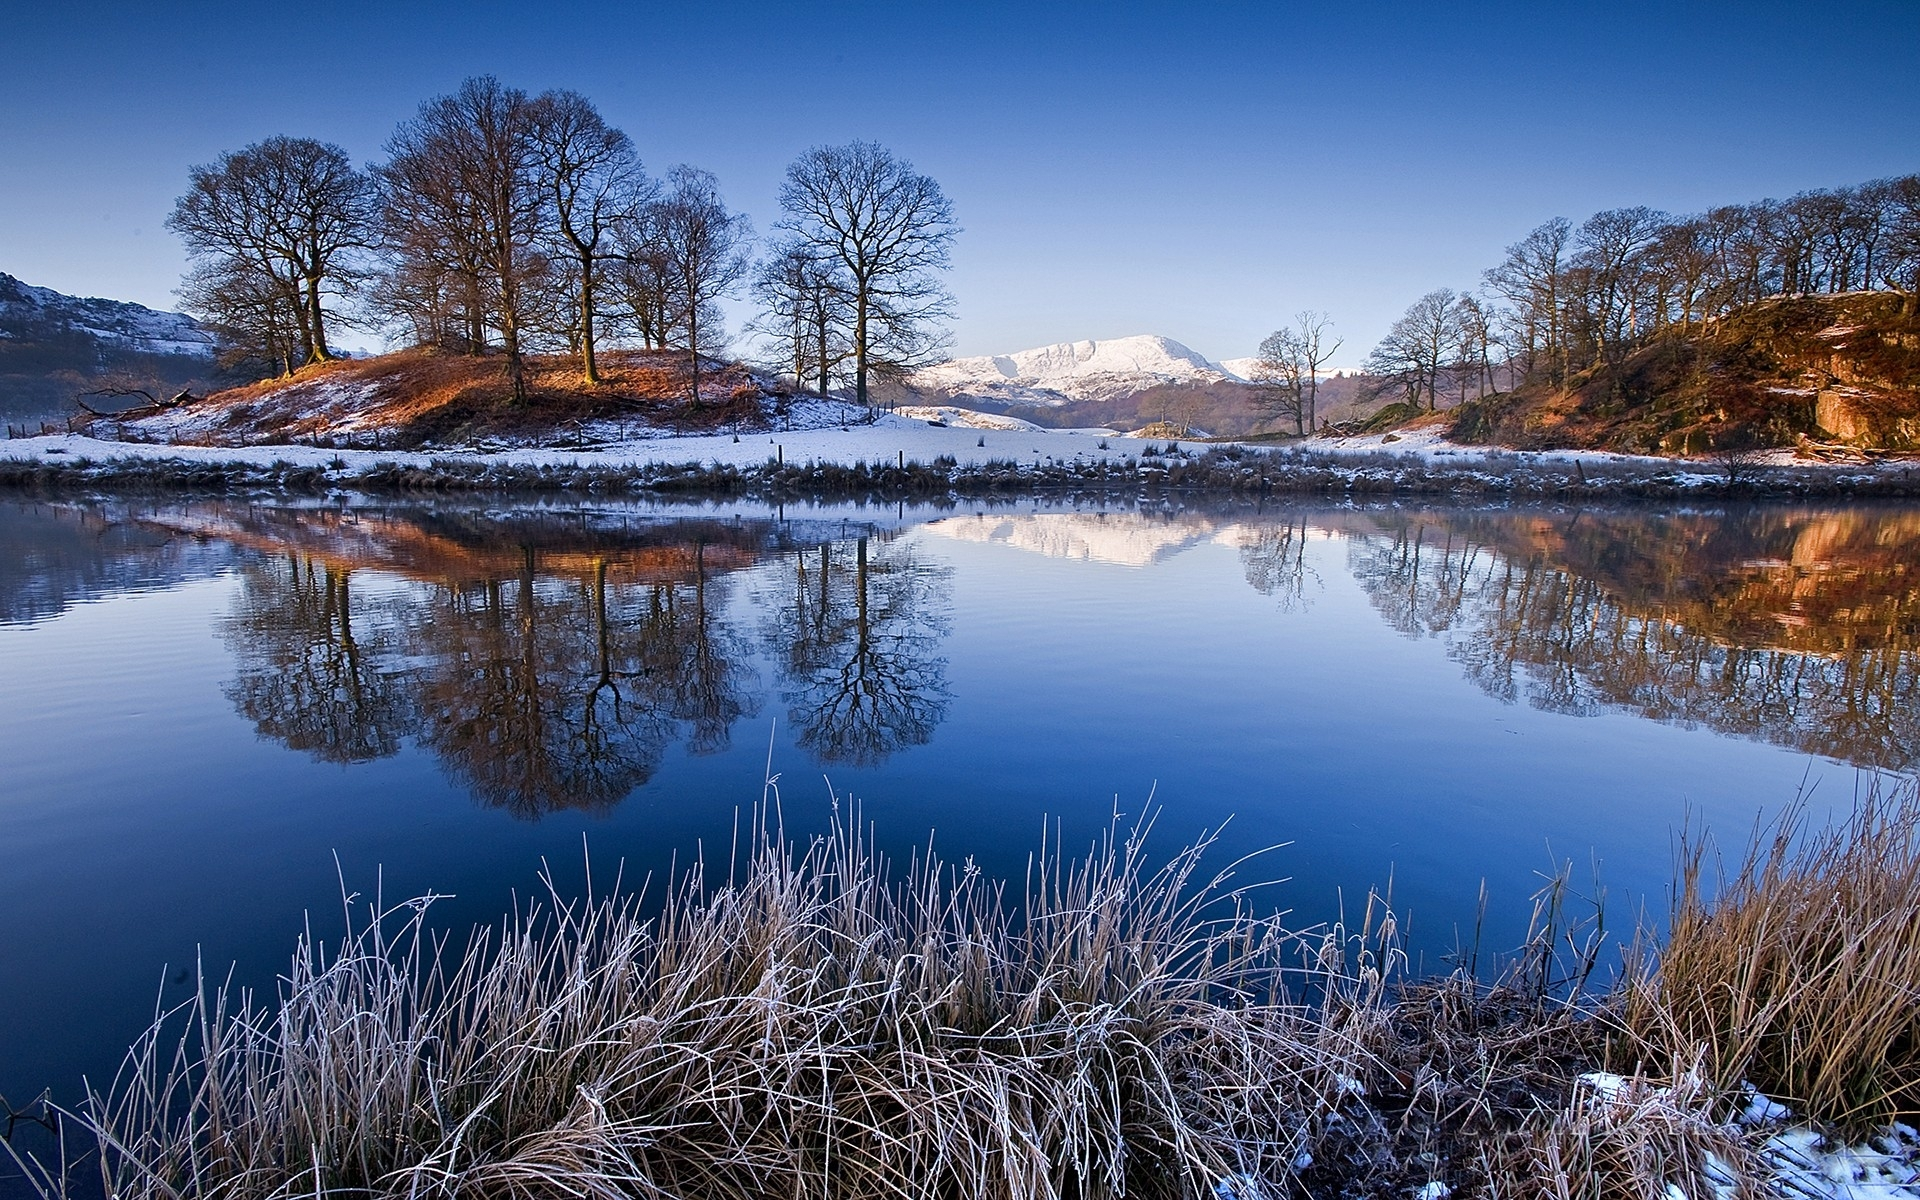 water nature landscapes lakes reflection mountains winter snow sky shore beaches